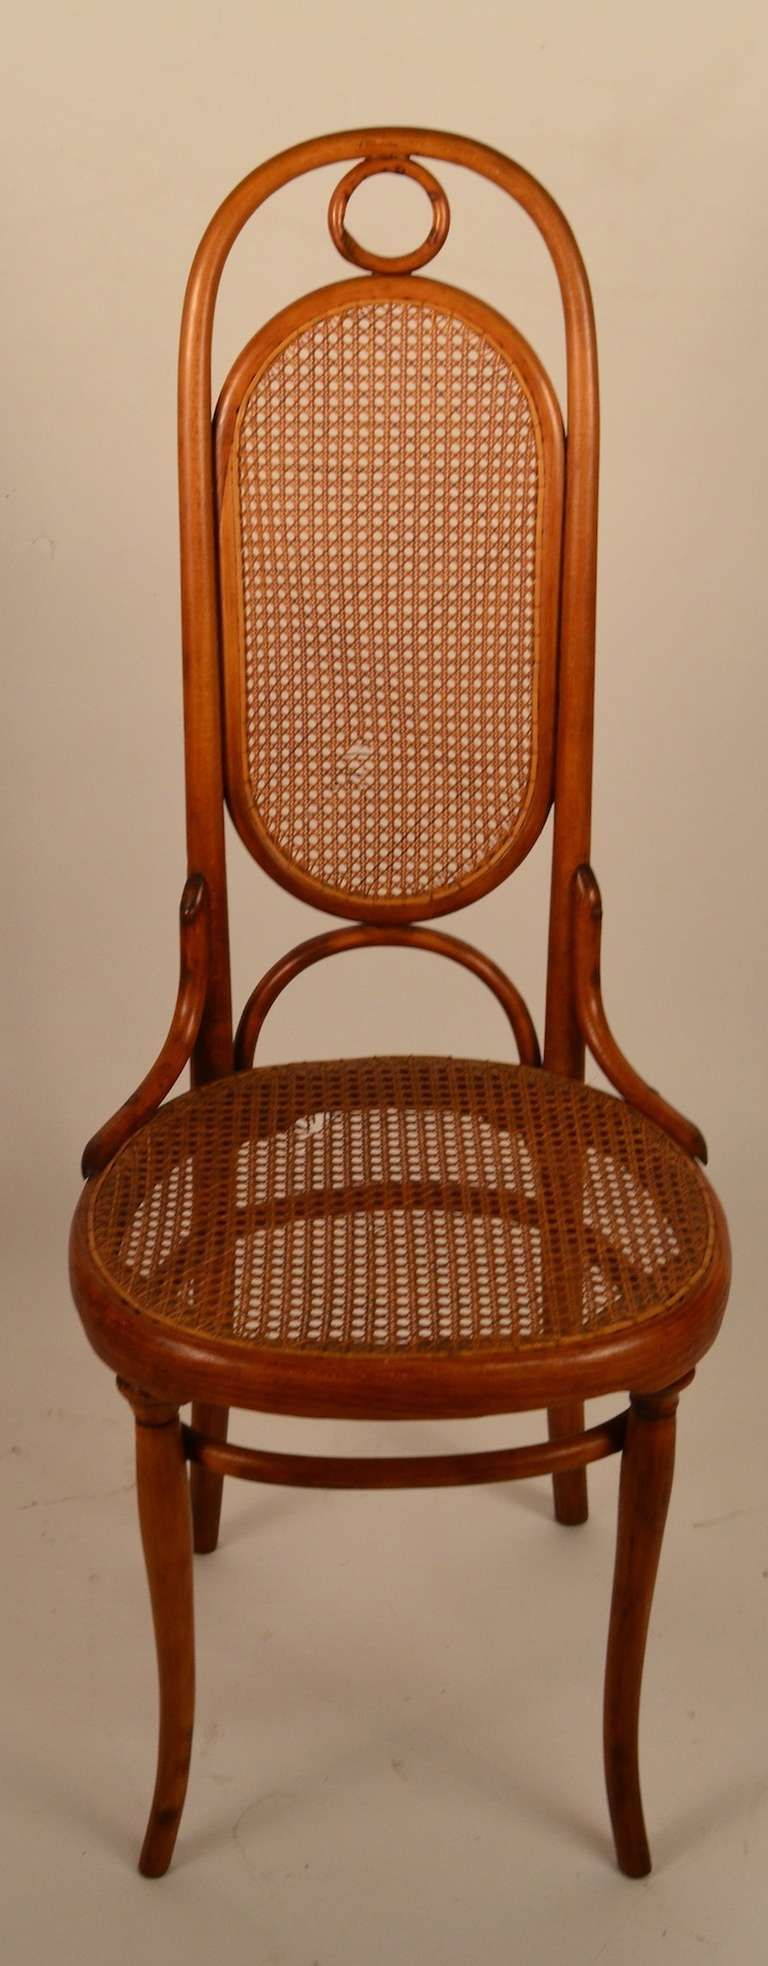 Vintage thonet style cafe chairs with stenciled seats - Early Thonet Bent Wood Chair